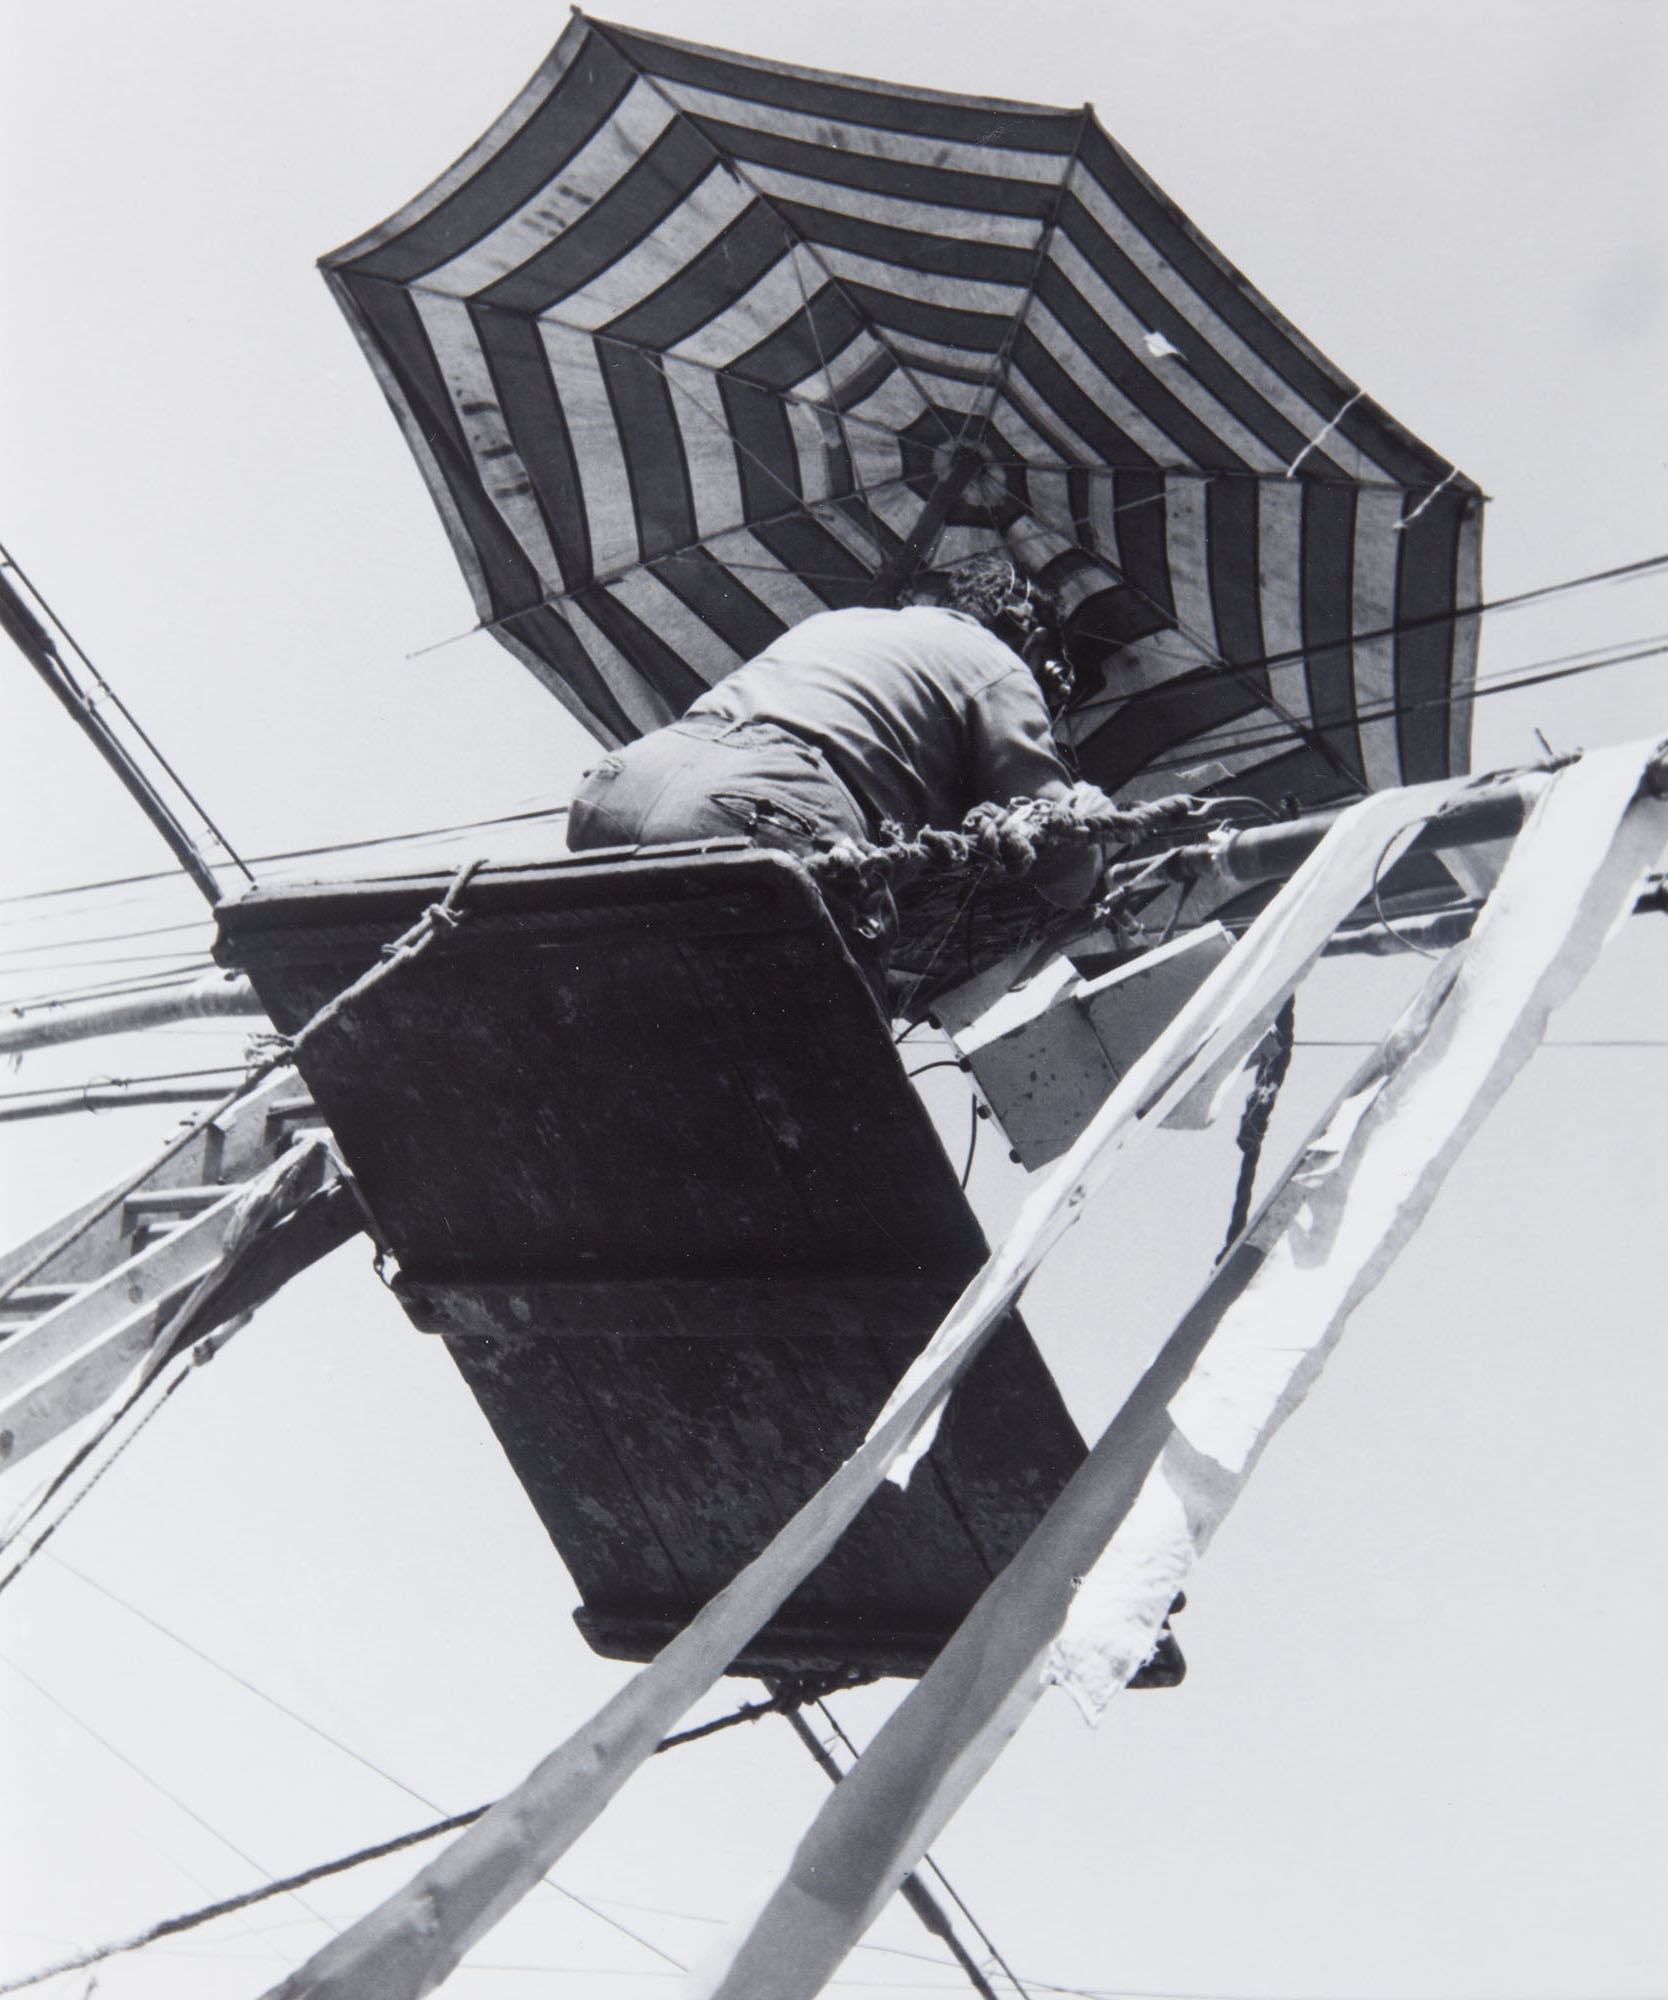 Lola Alvarez Bravo, Hombre y cables de telefono [Man and telephone wires], 1930. Silver gelatin print. Collection of DePaul Art Museum, Art Acquisition Endowment Fund, 2007.26.